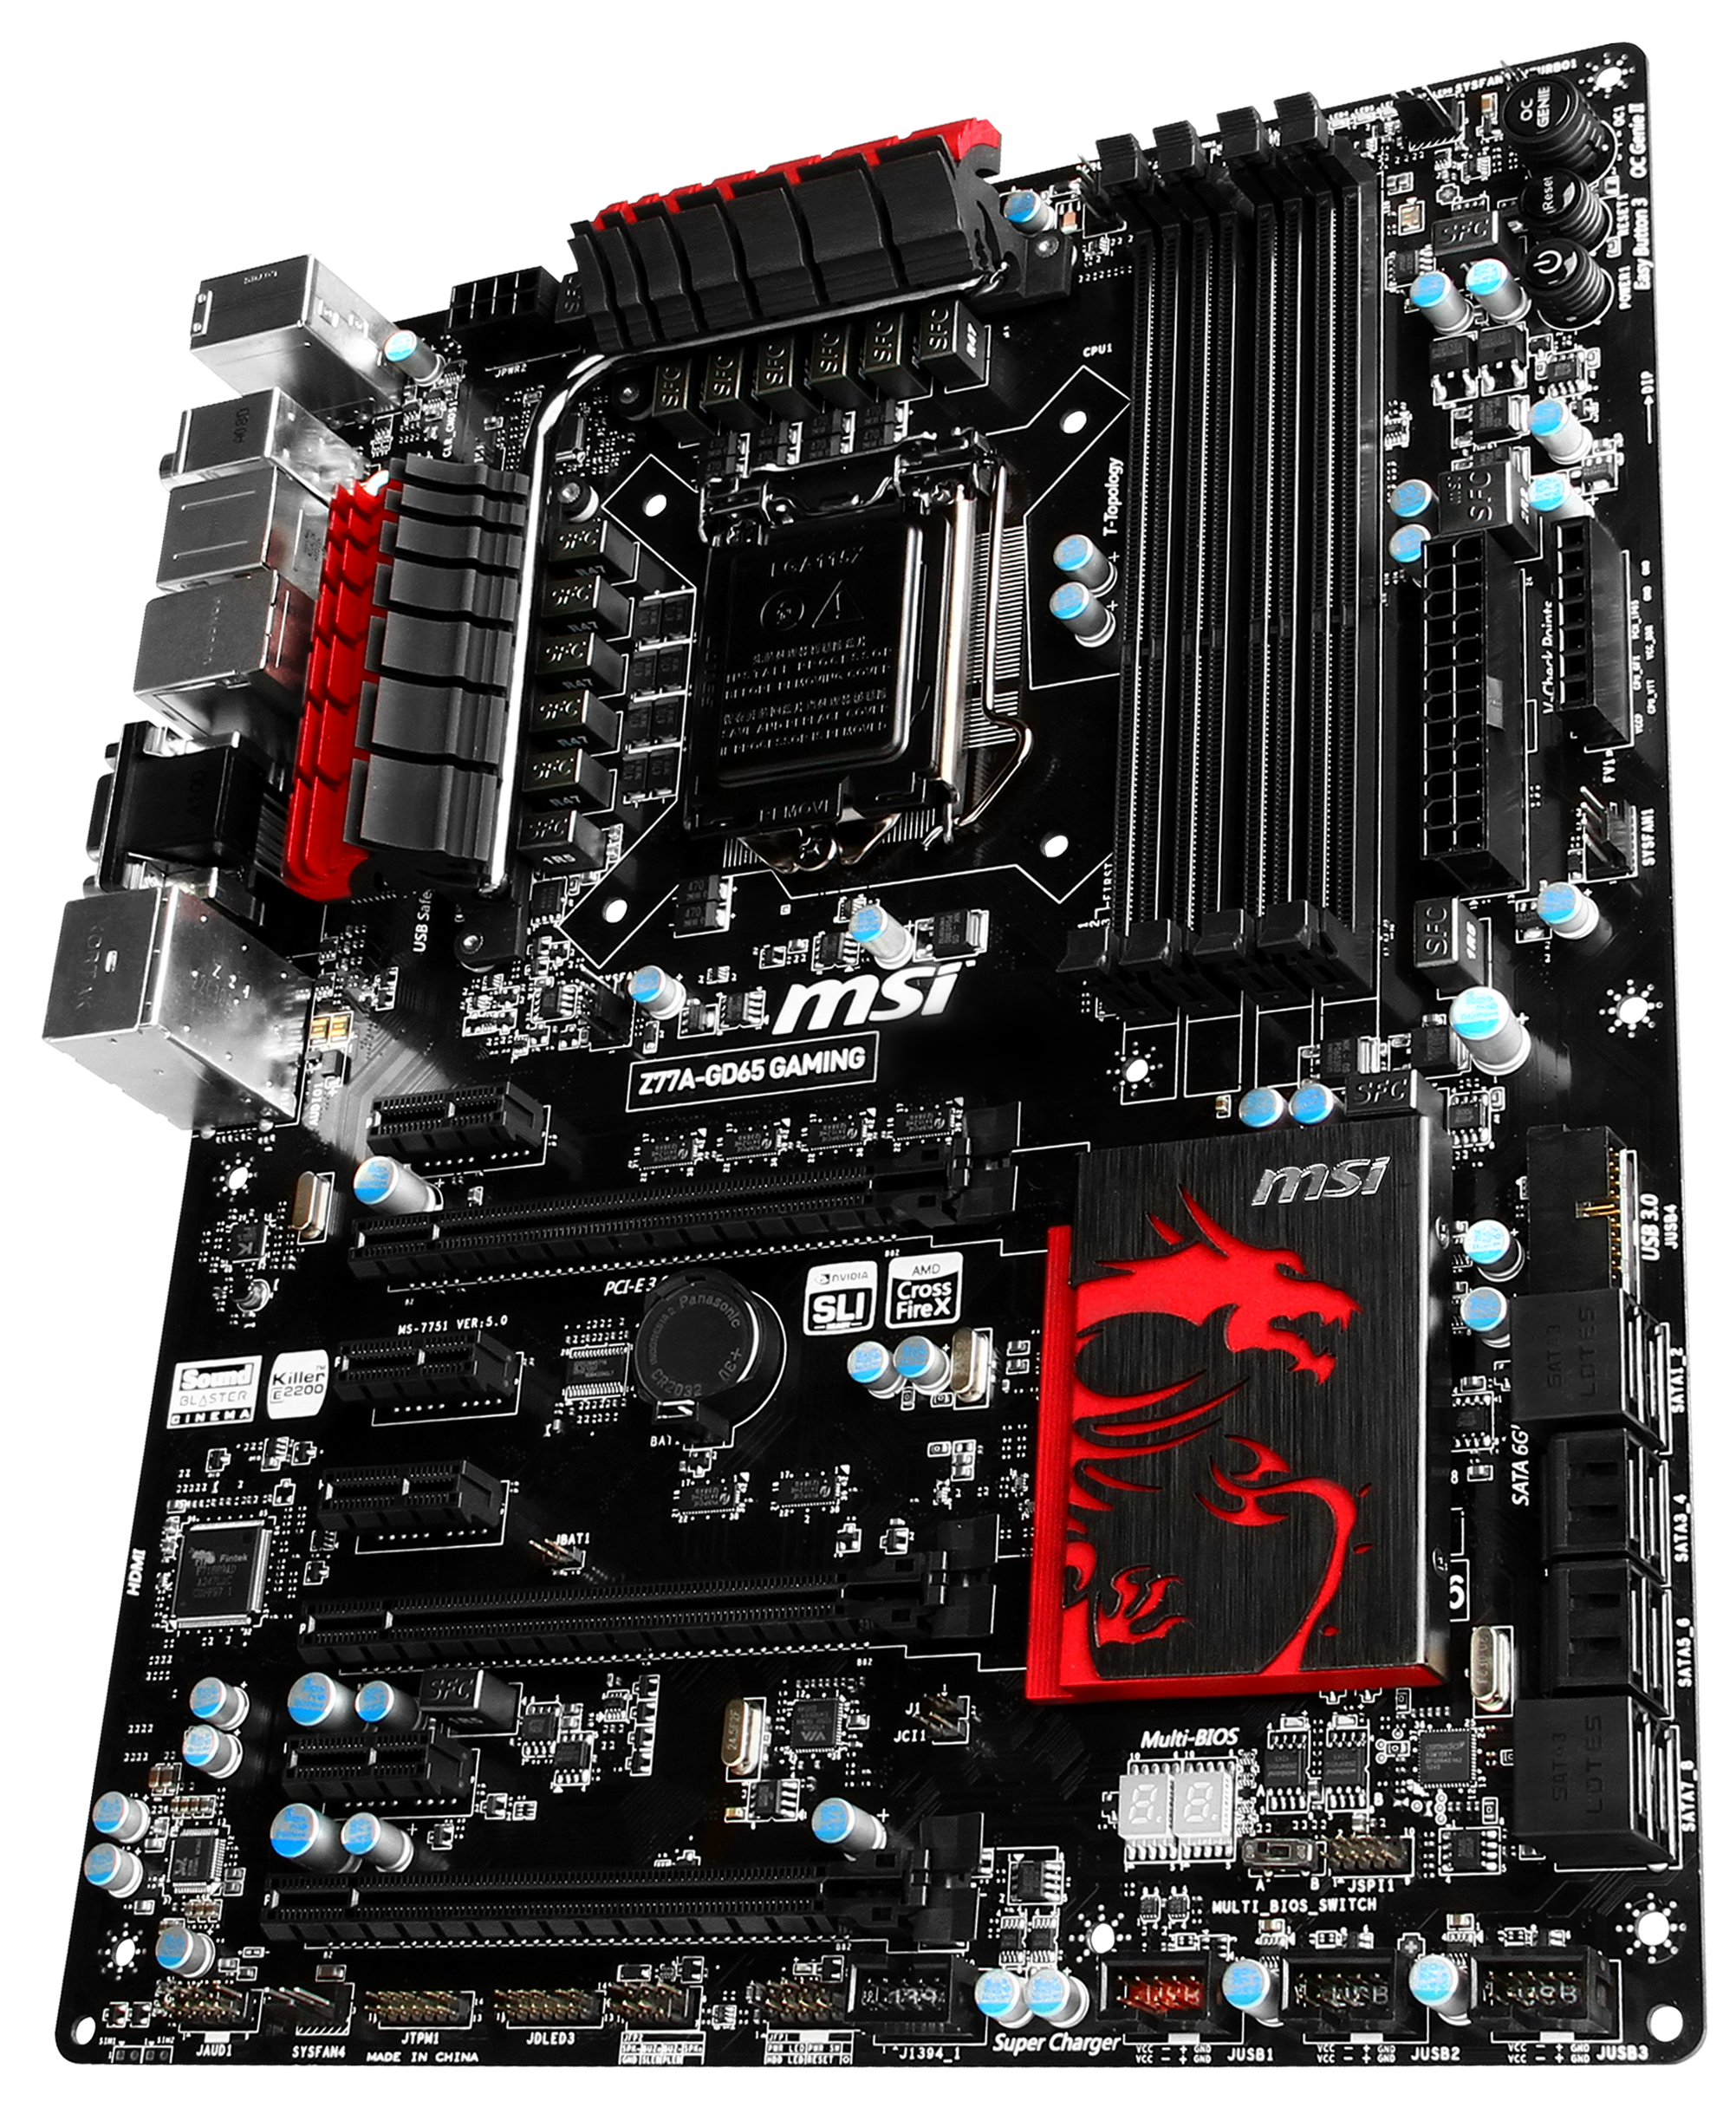 MSI Z77A-GD65 Gaming Review